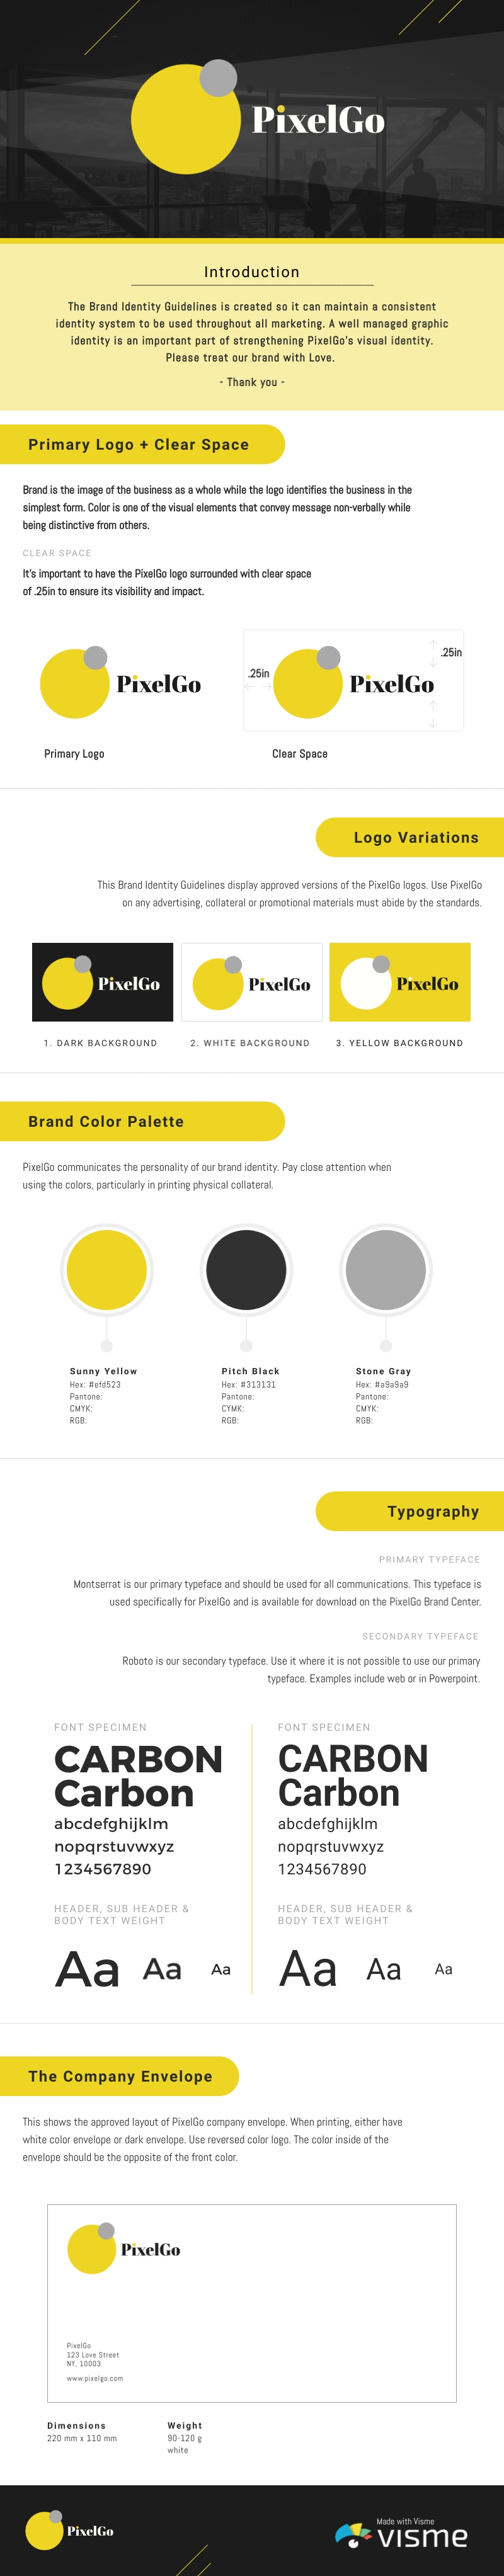 Tech Company Brand Guidelines - Infographic Template